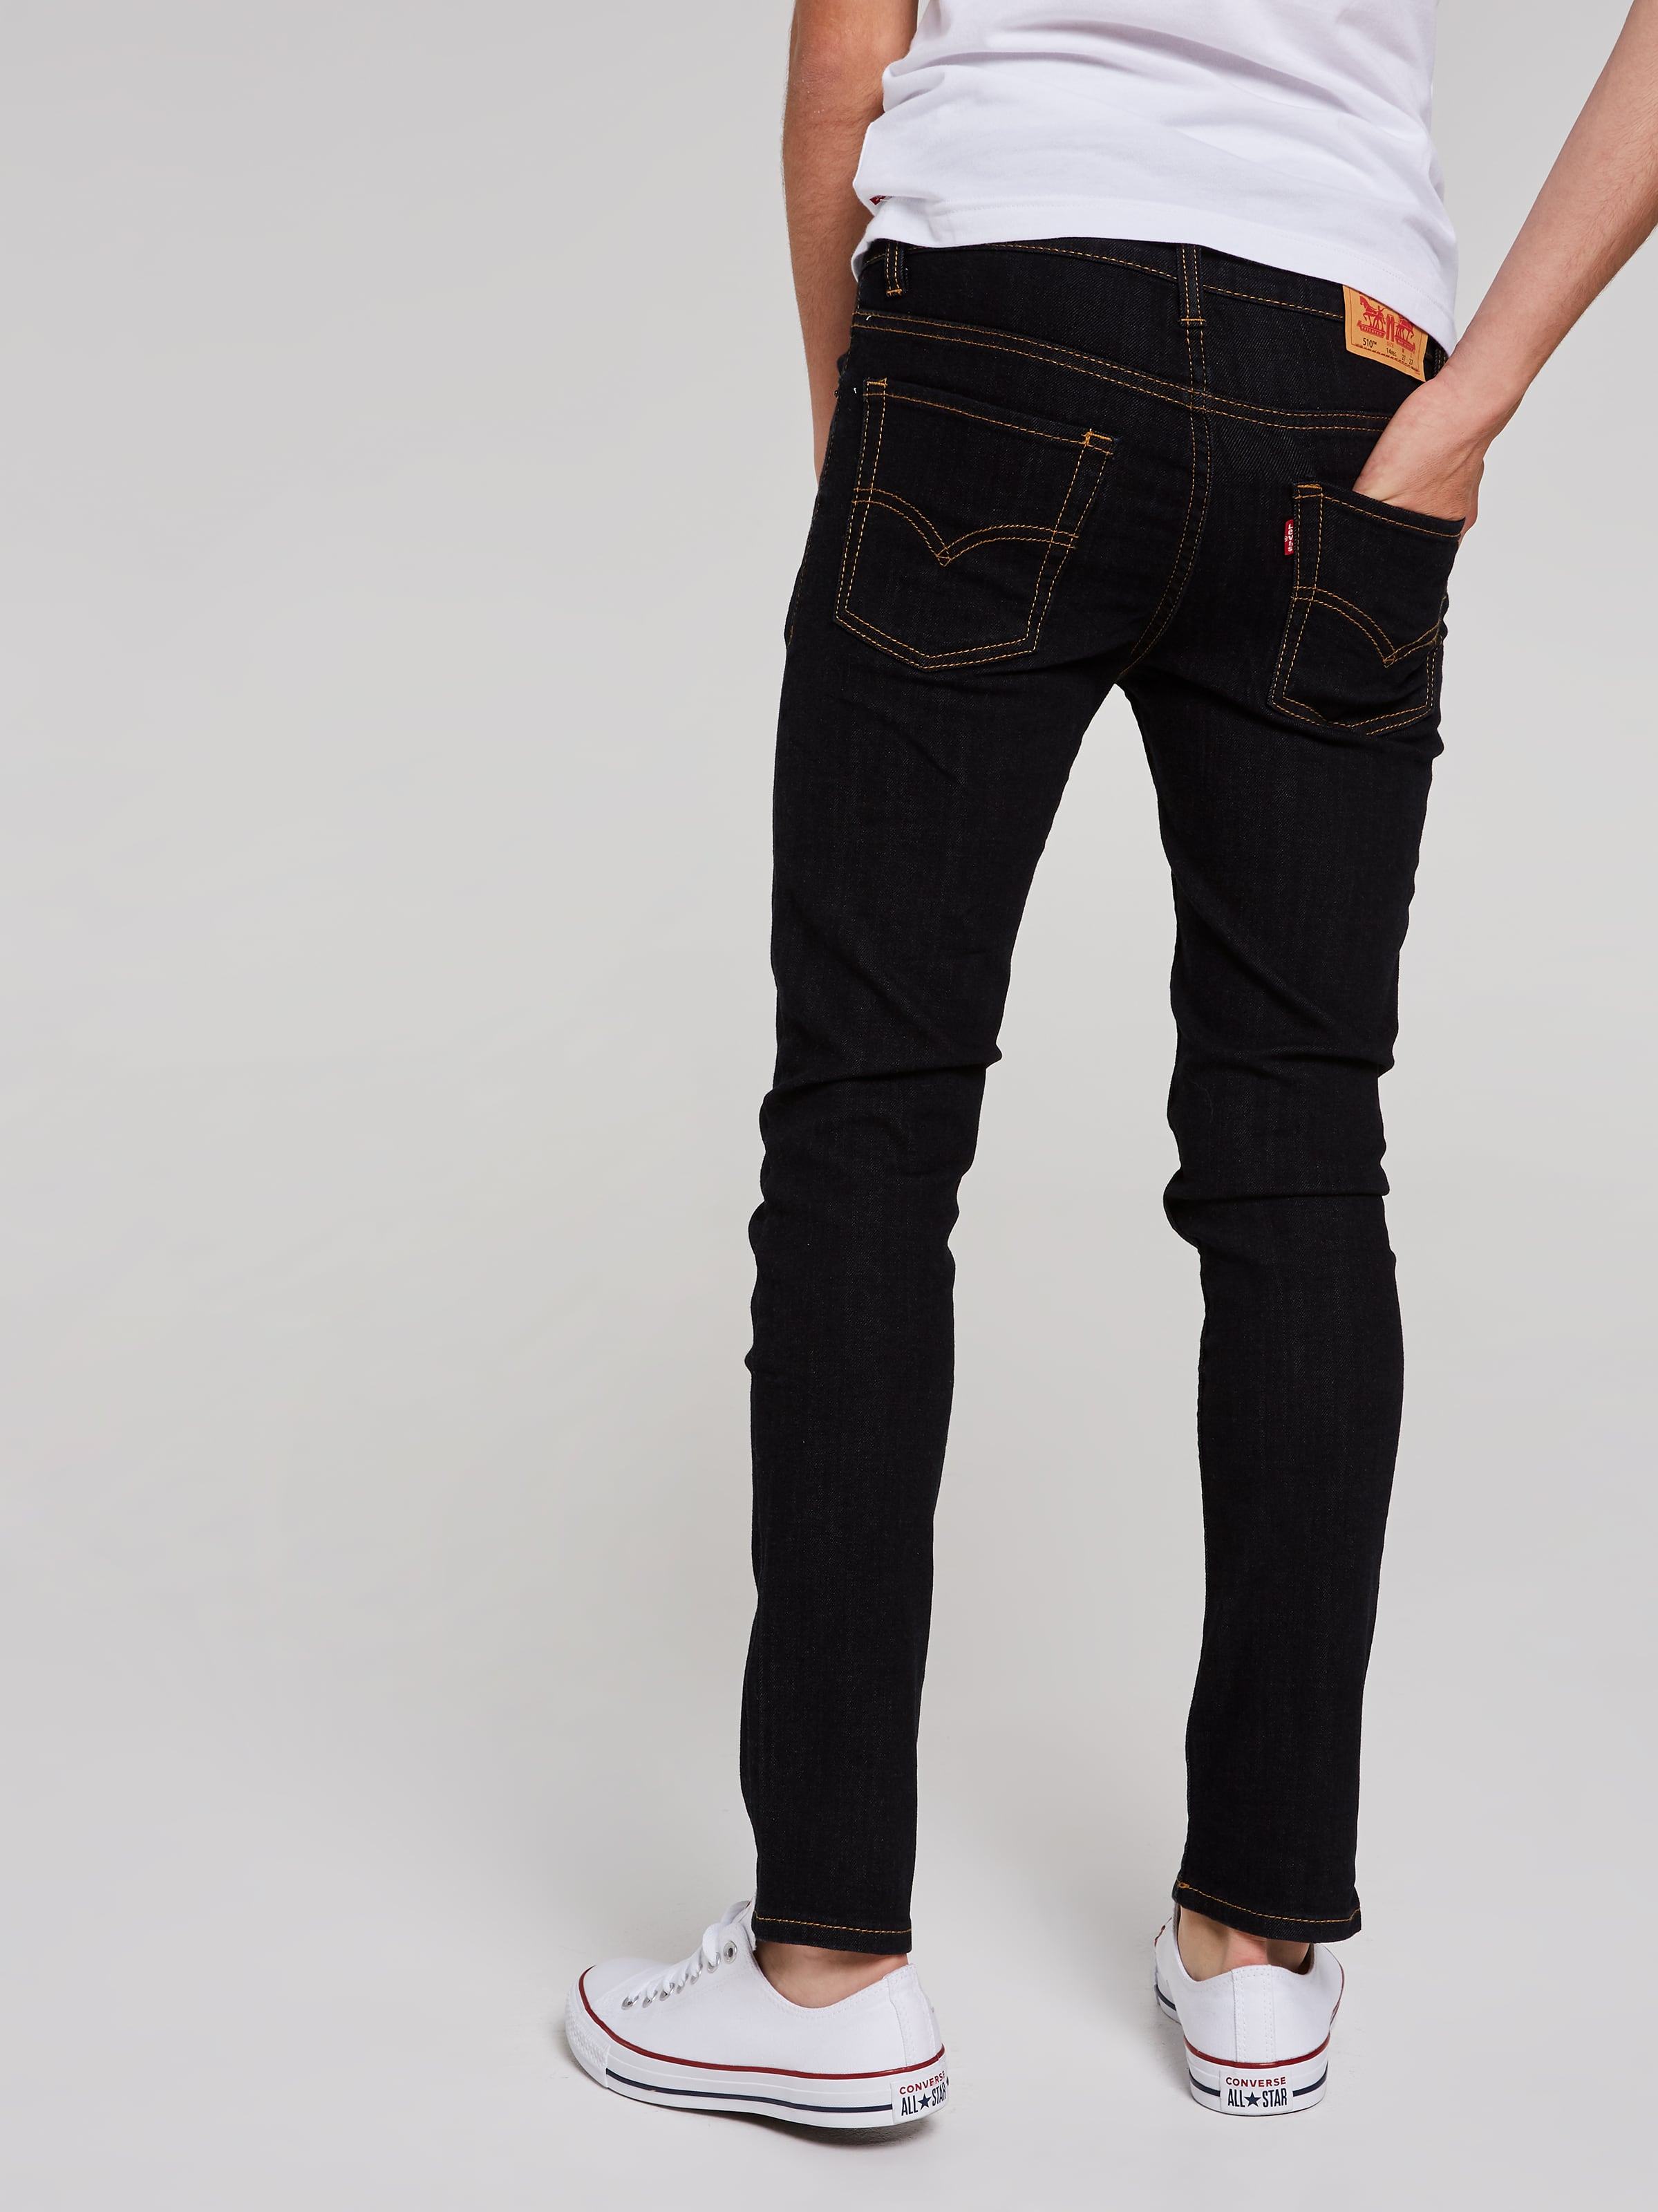 6dd95360a Levi's Boys 510 Skinny Fit Jean - Just Jeans Online